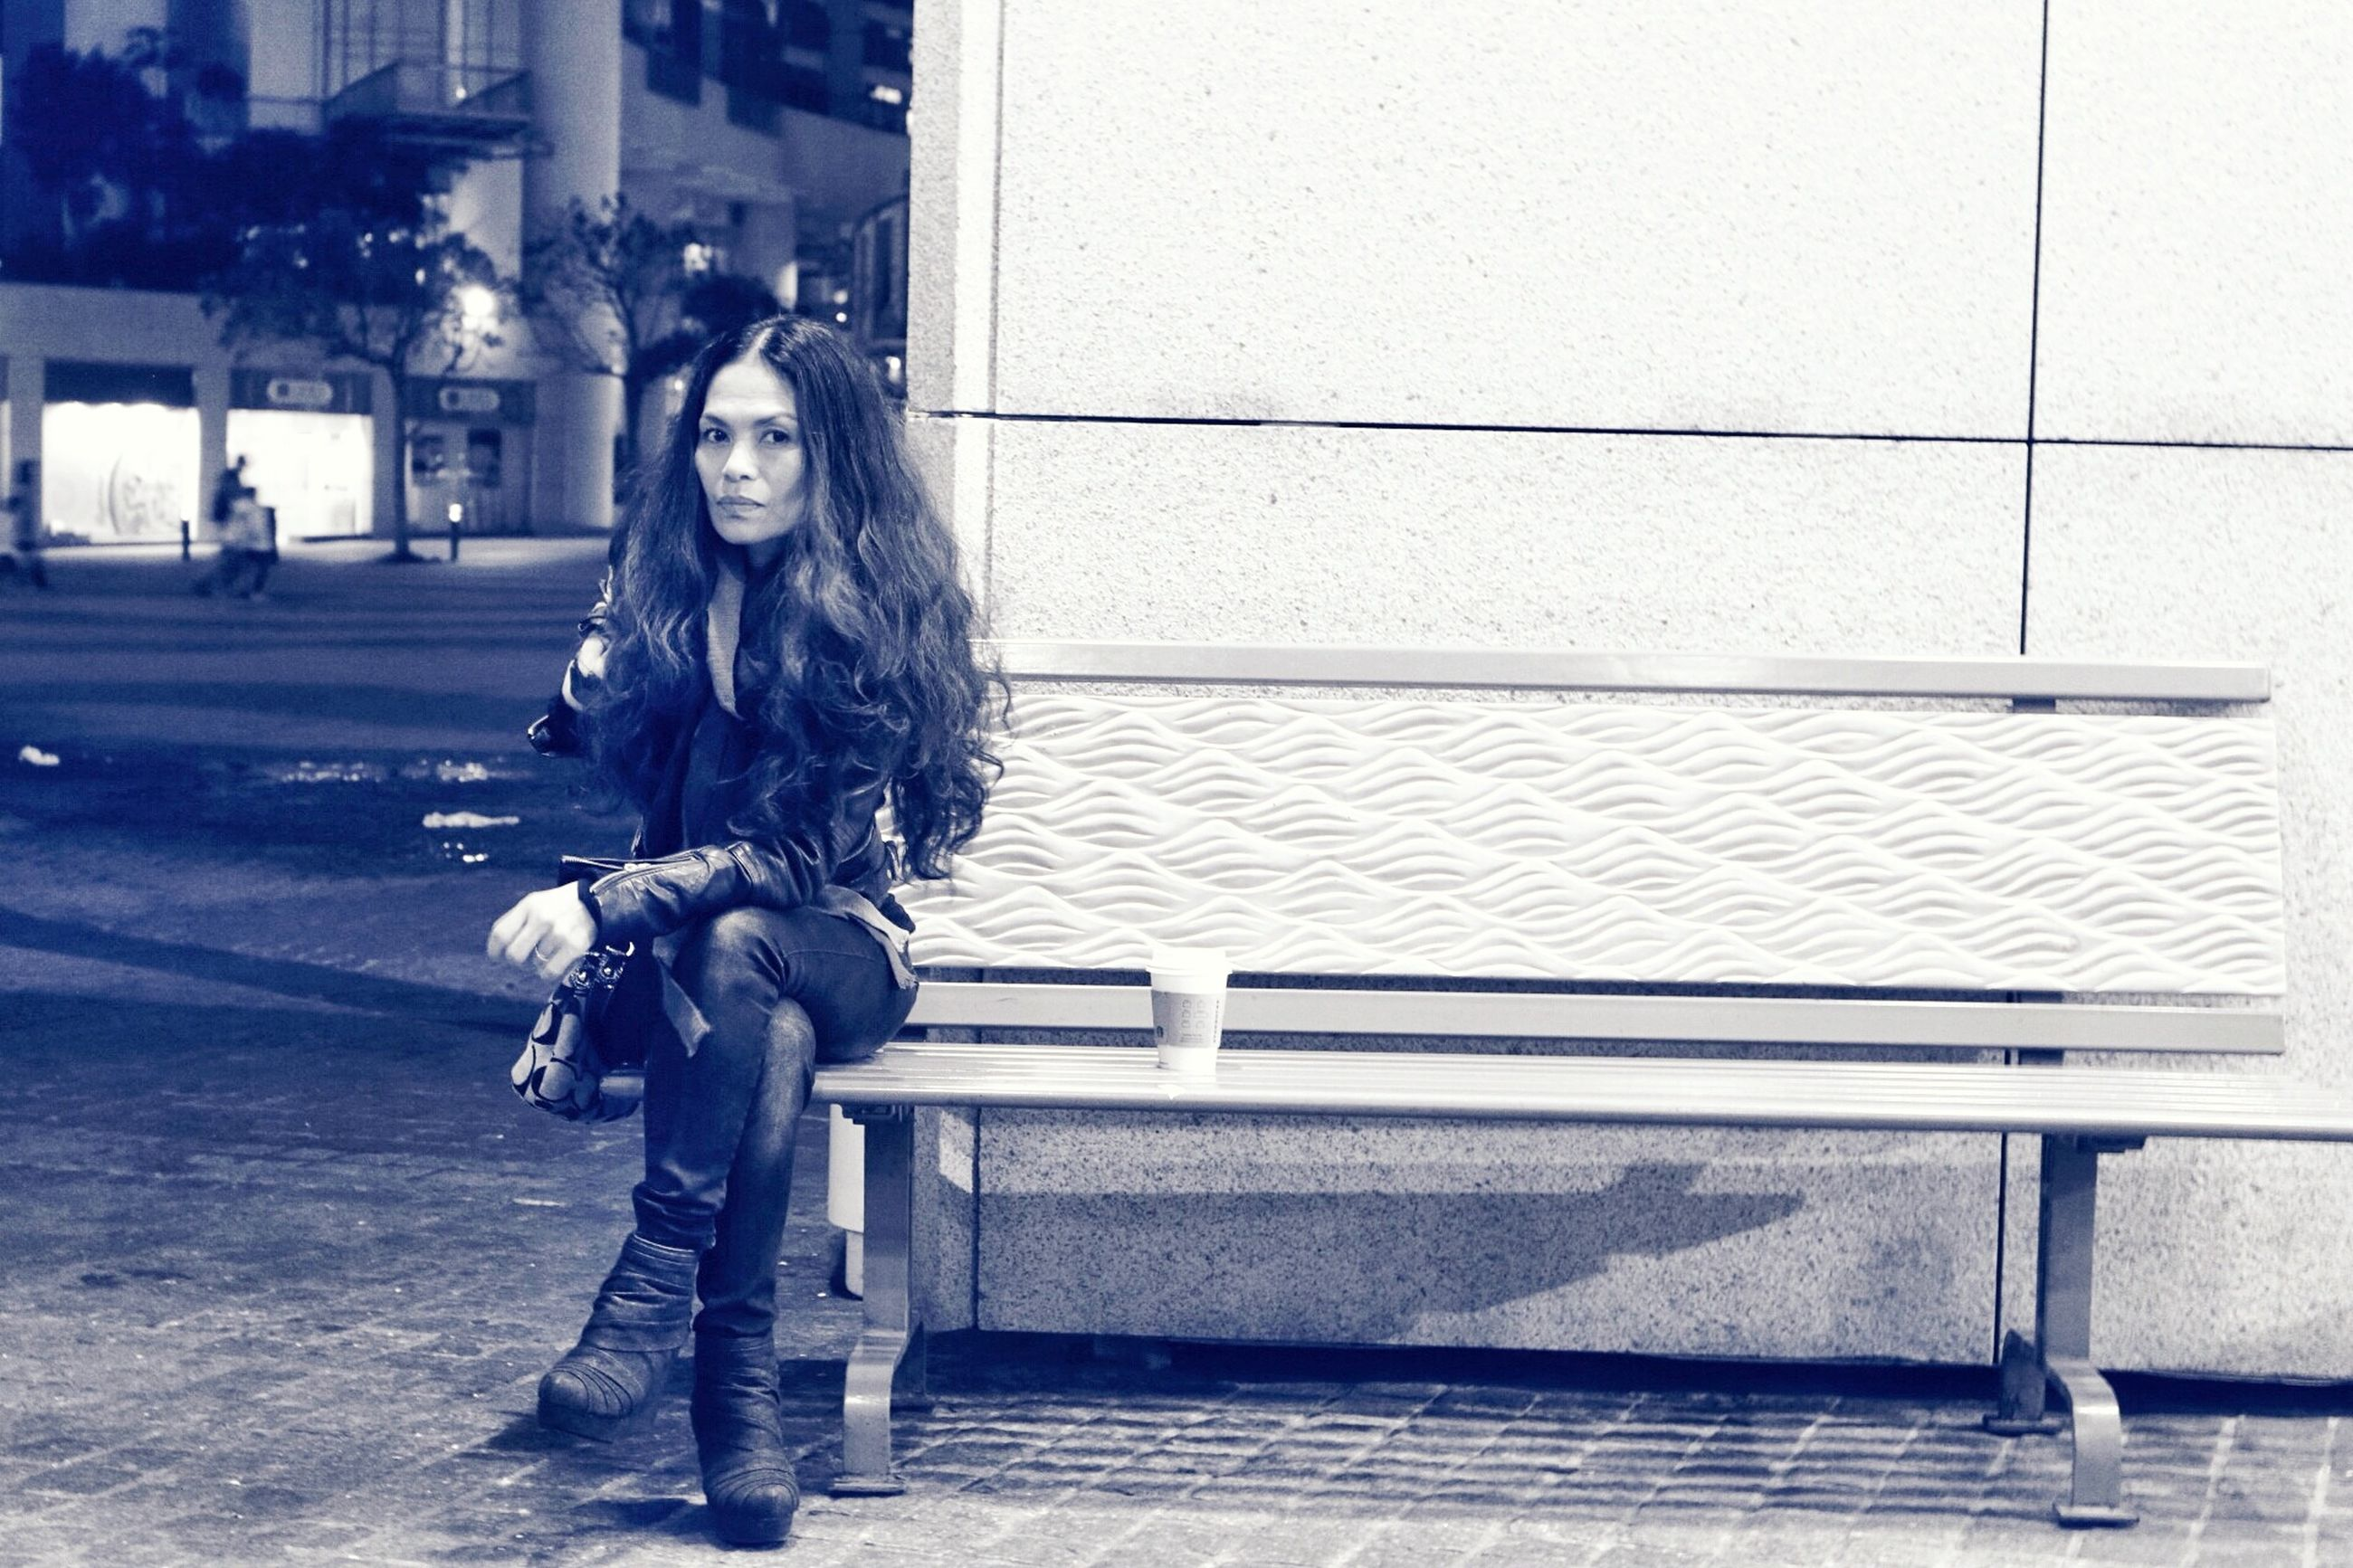 full length, casual clothing, lifestyles, building exterior, person, leisure activity, elementary age, built structure, childhood, architecture, standing, street, side view, sitting, looking away, girls, day, young adult